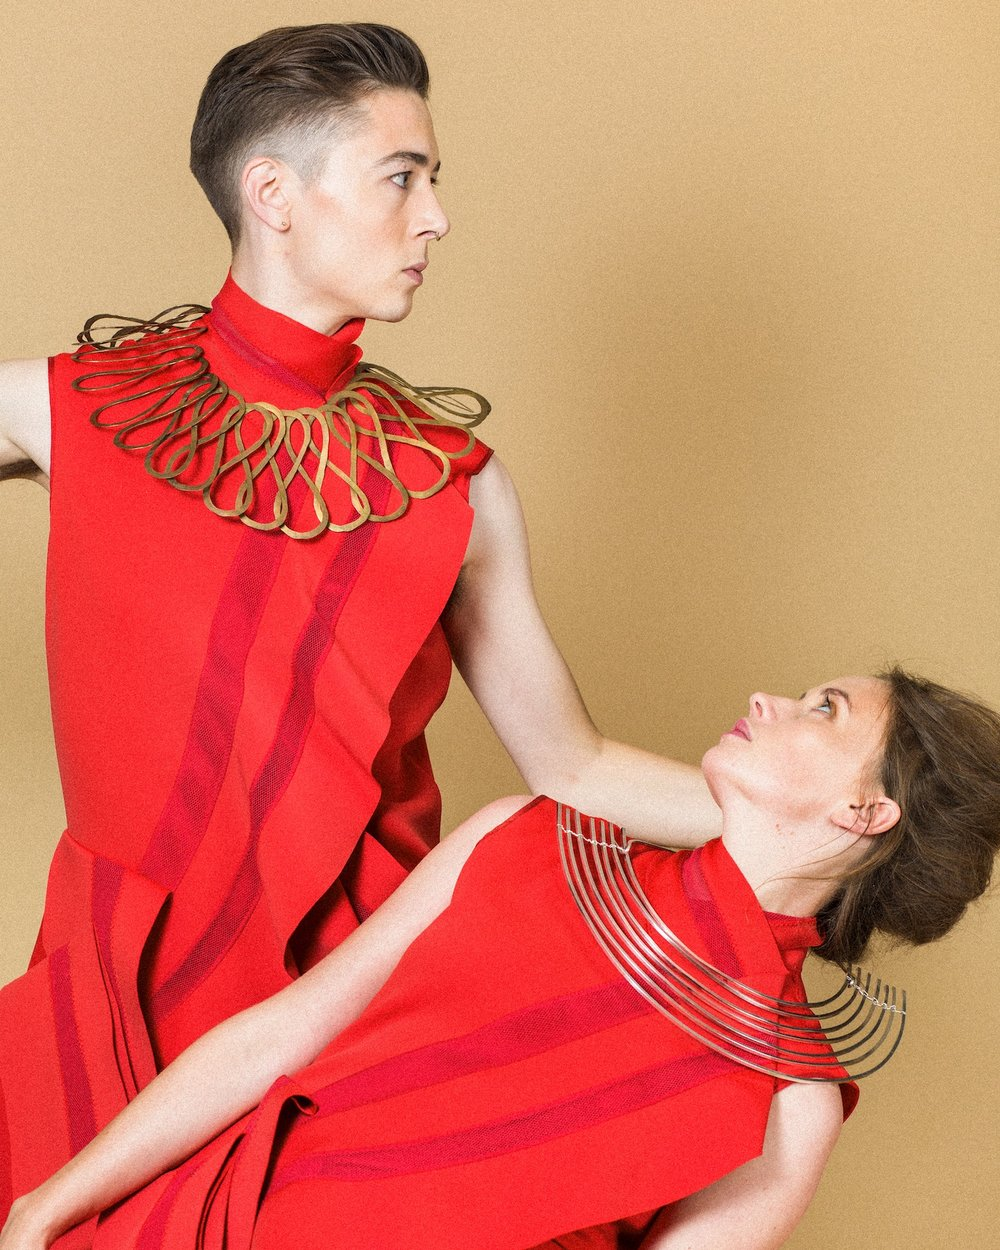 Photo shoot images: Alexander English.   Styling: Elise Overland.  Dancers: James Morgan & Janine Harrington